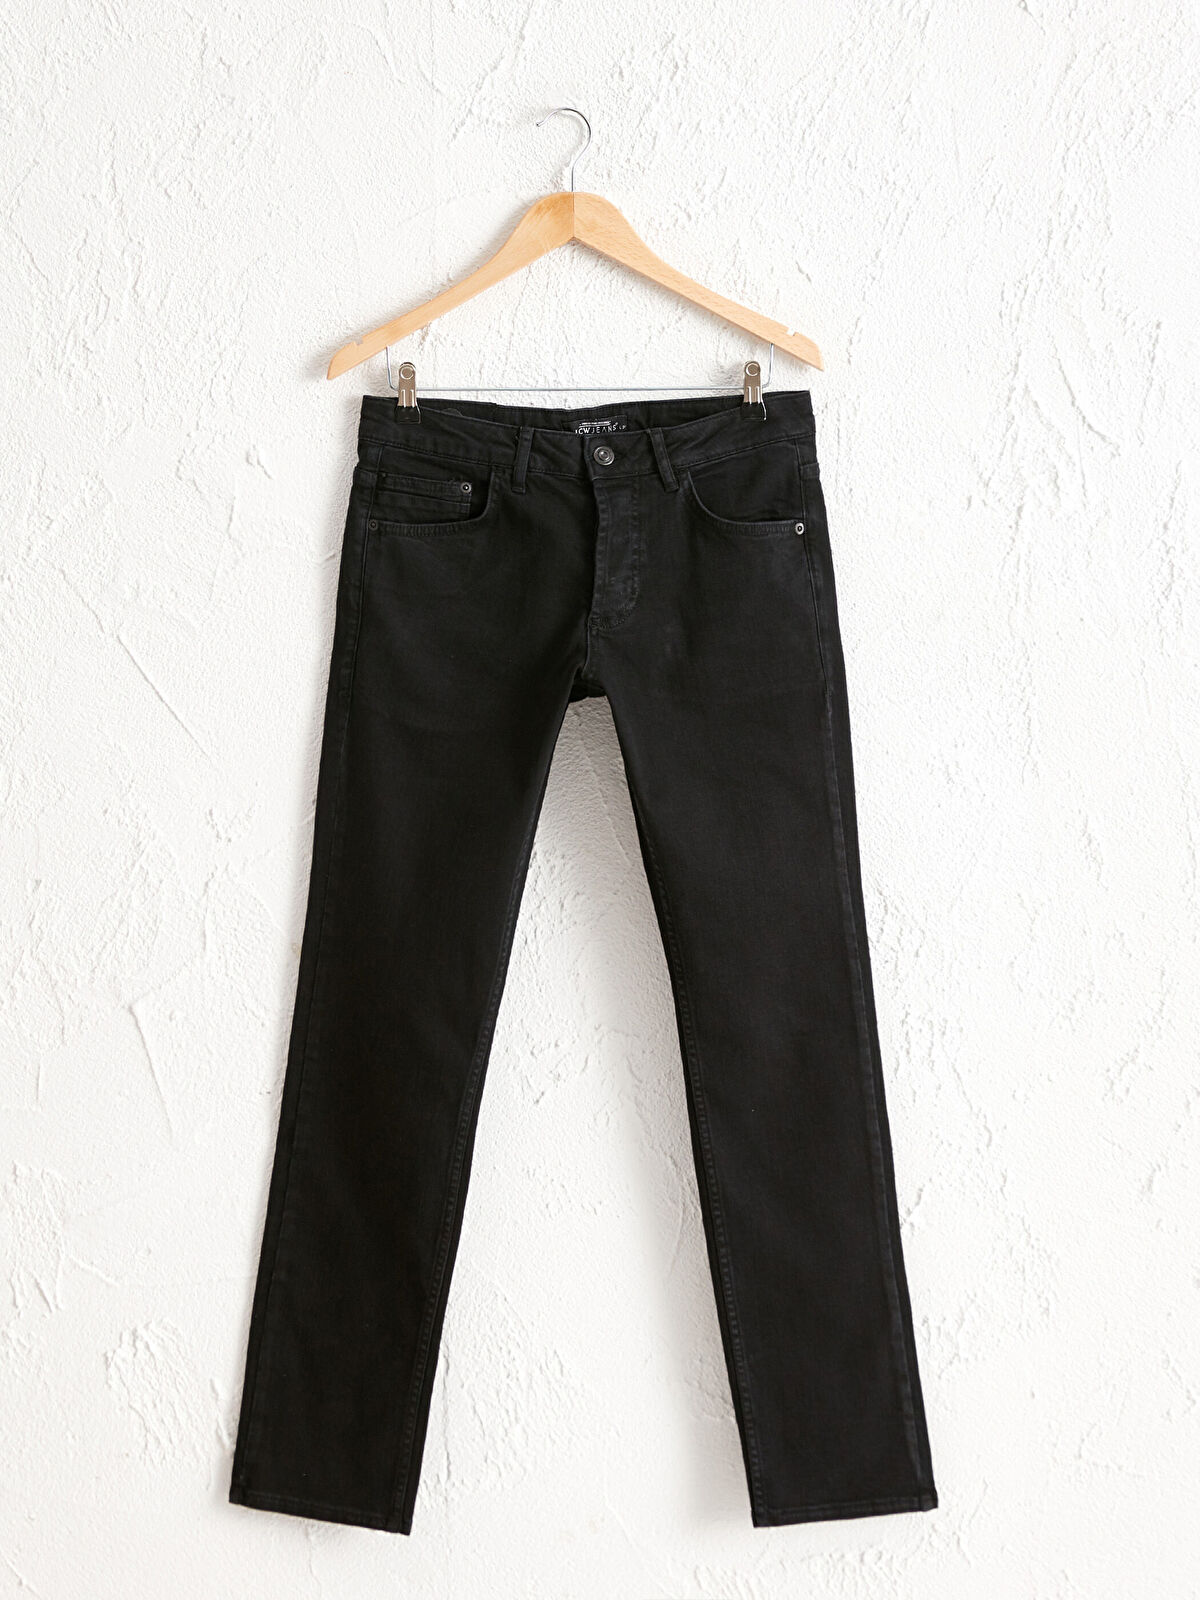 750 Slim Fit Jean Pantolon - LC WAIKIKI